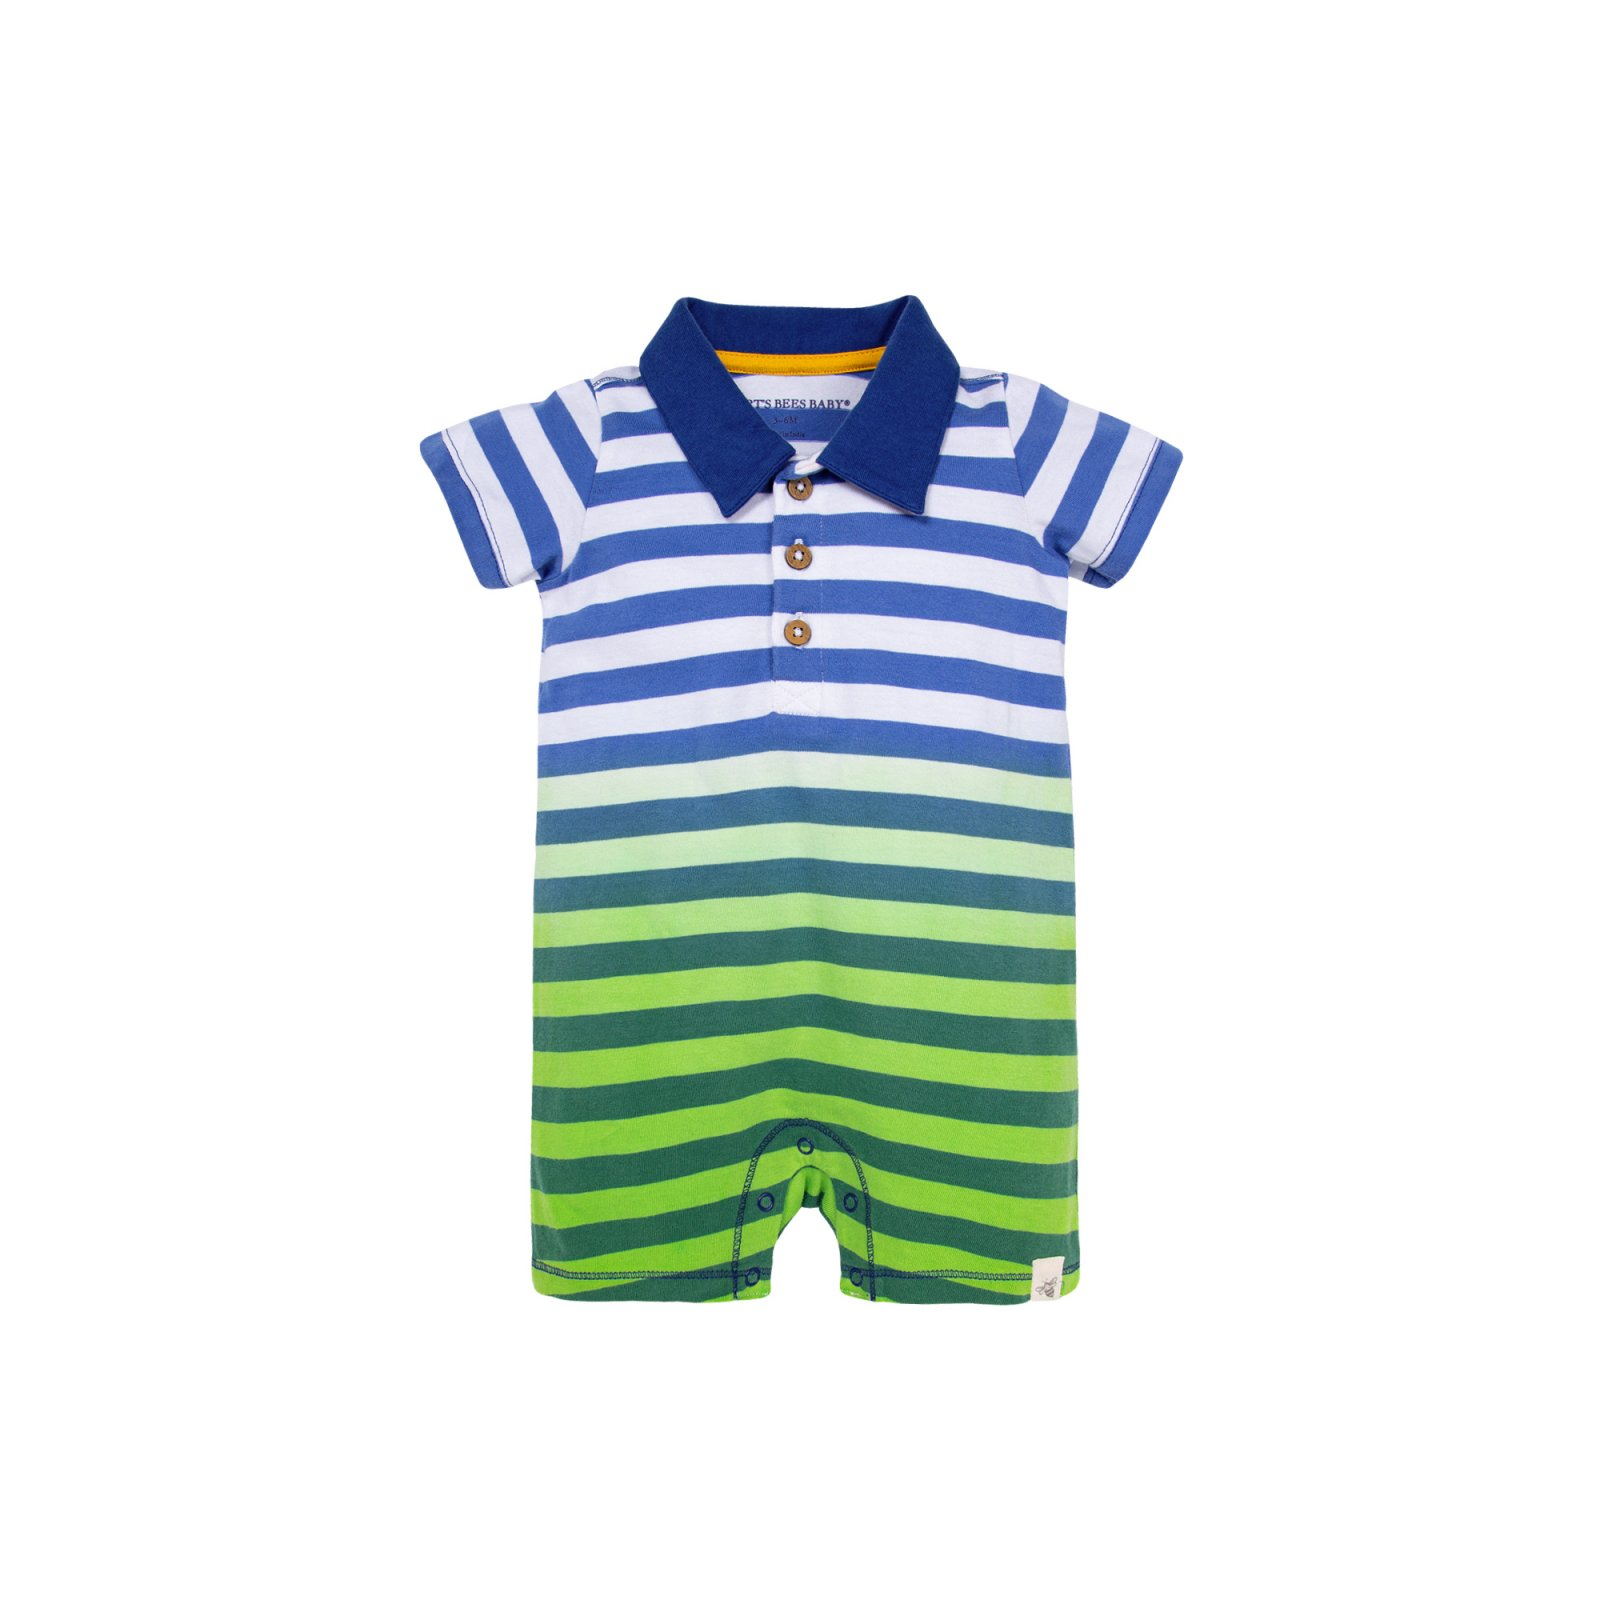 Burts Bees Baby Dip Dye Polo Romper - Parrot LY27578